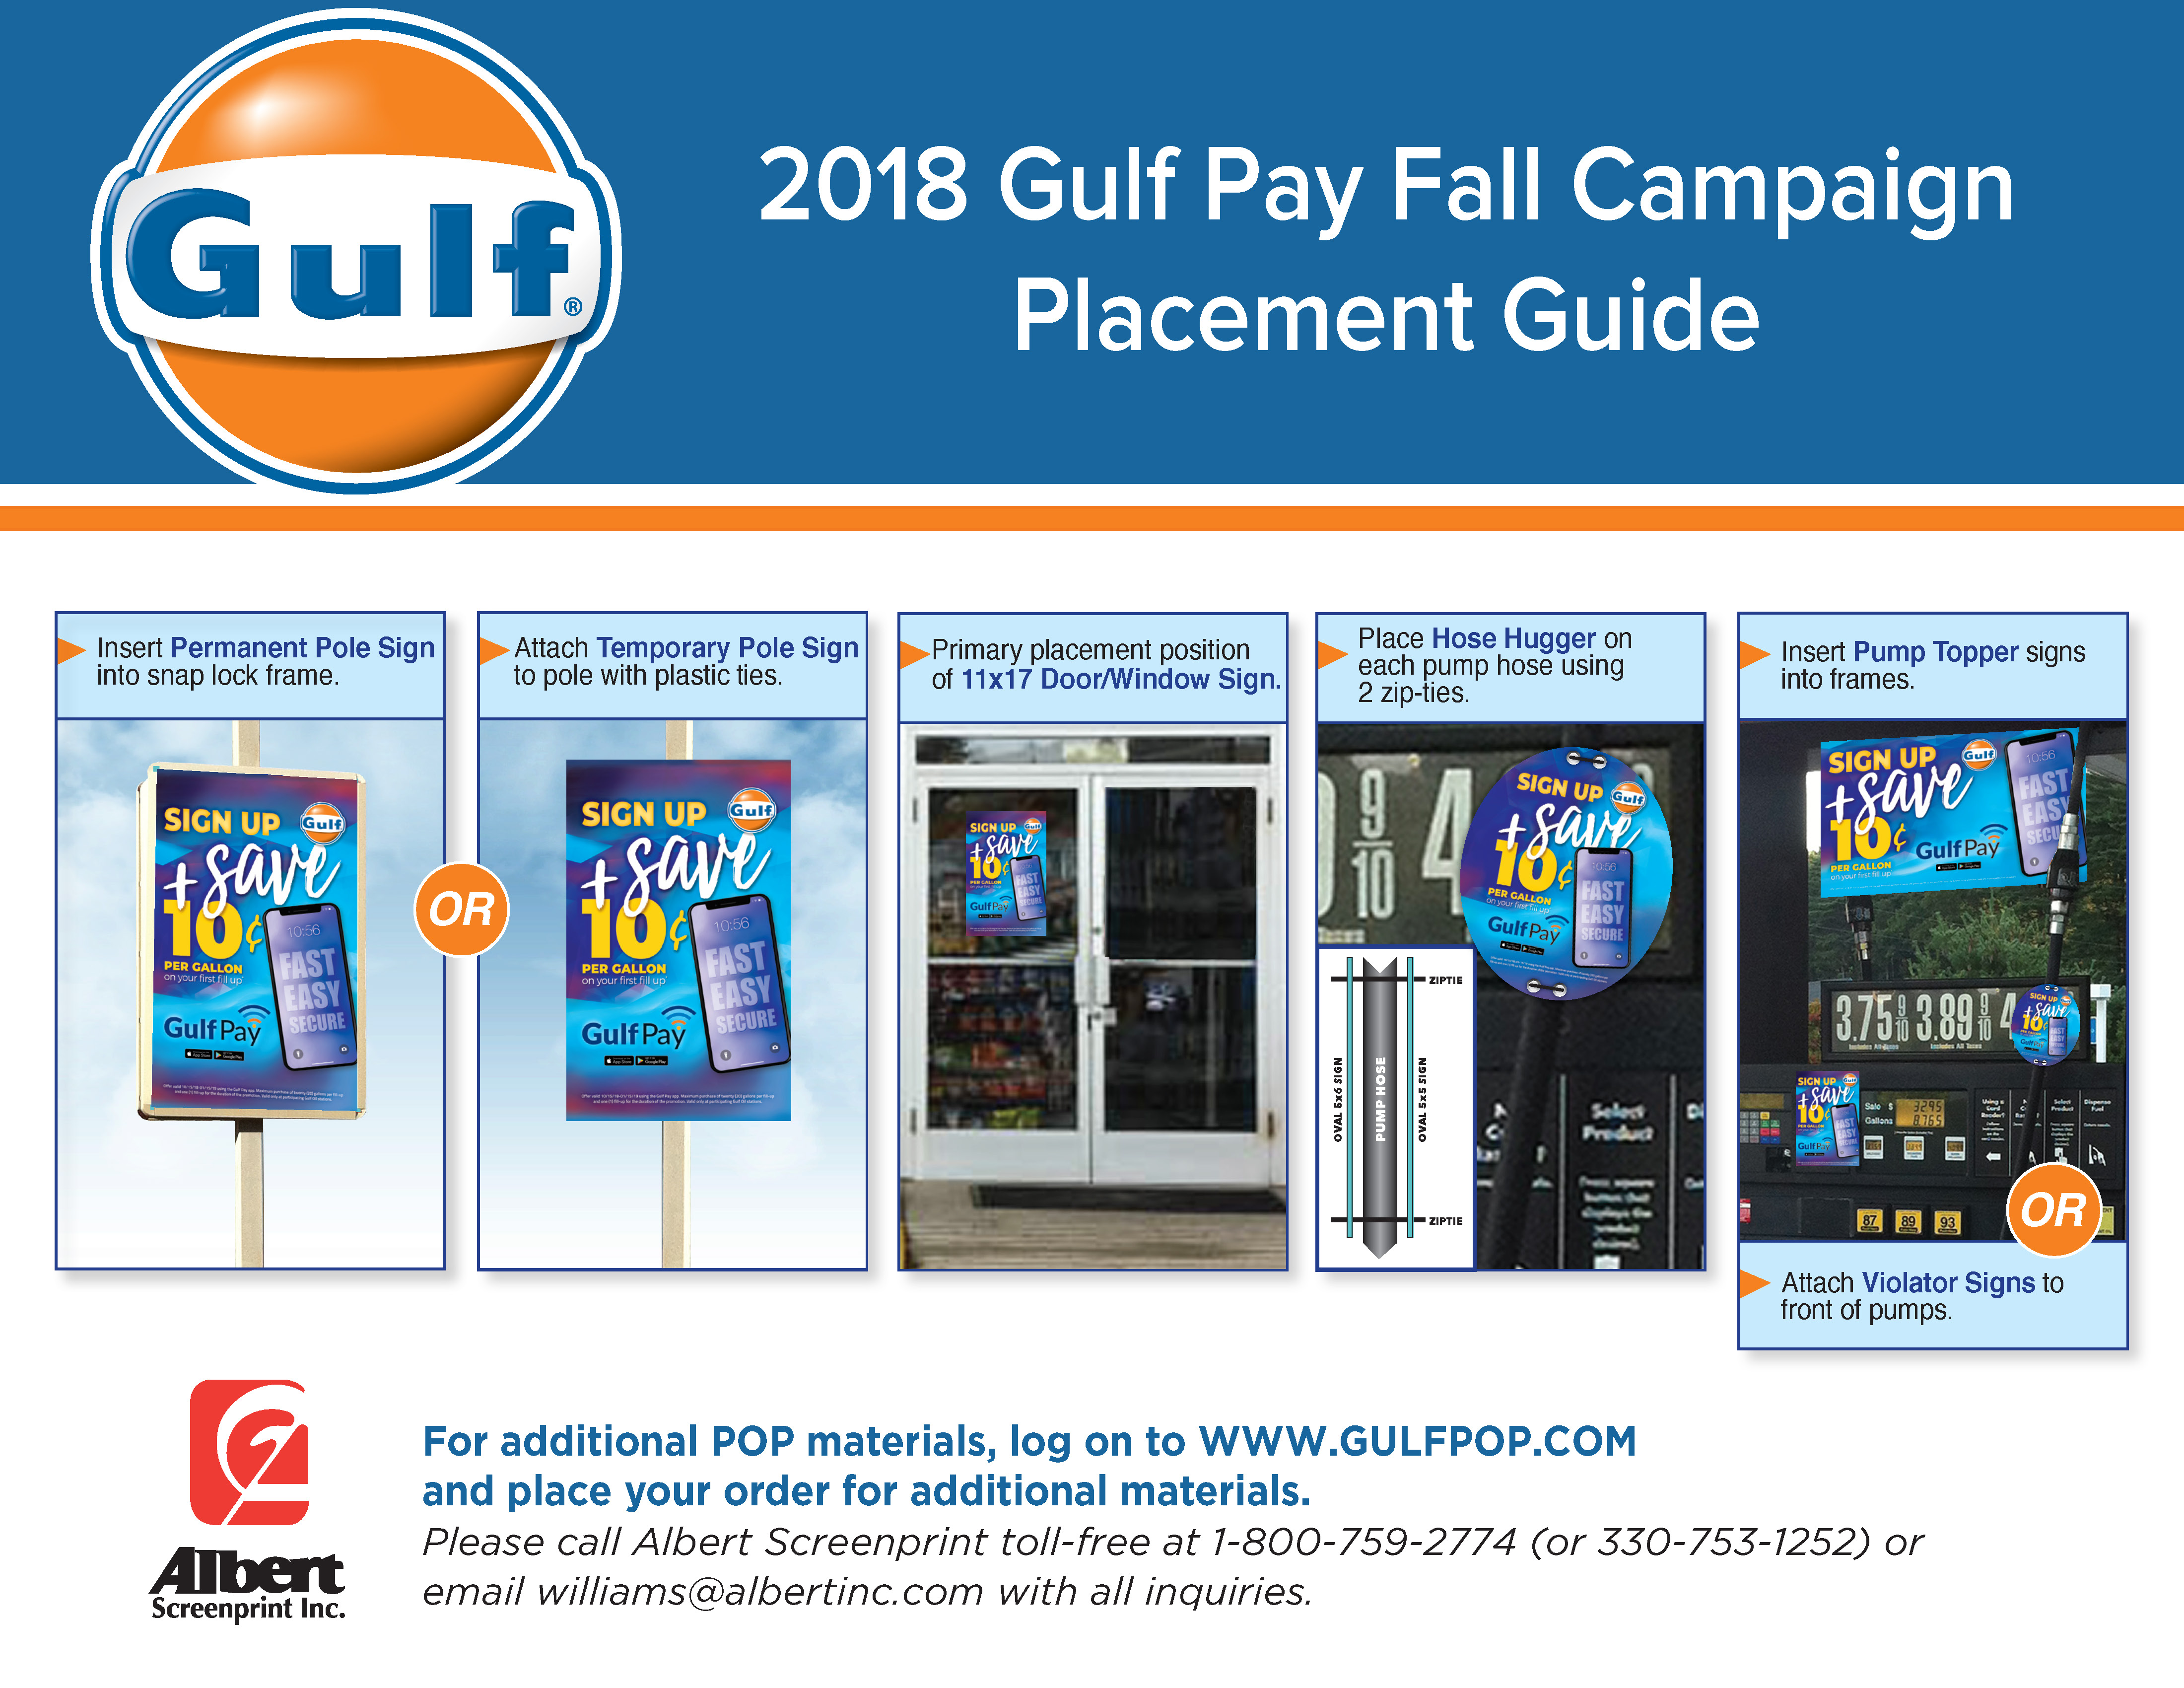 placement guide 2018 qtr4 placement guide fall gulf pay kit